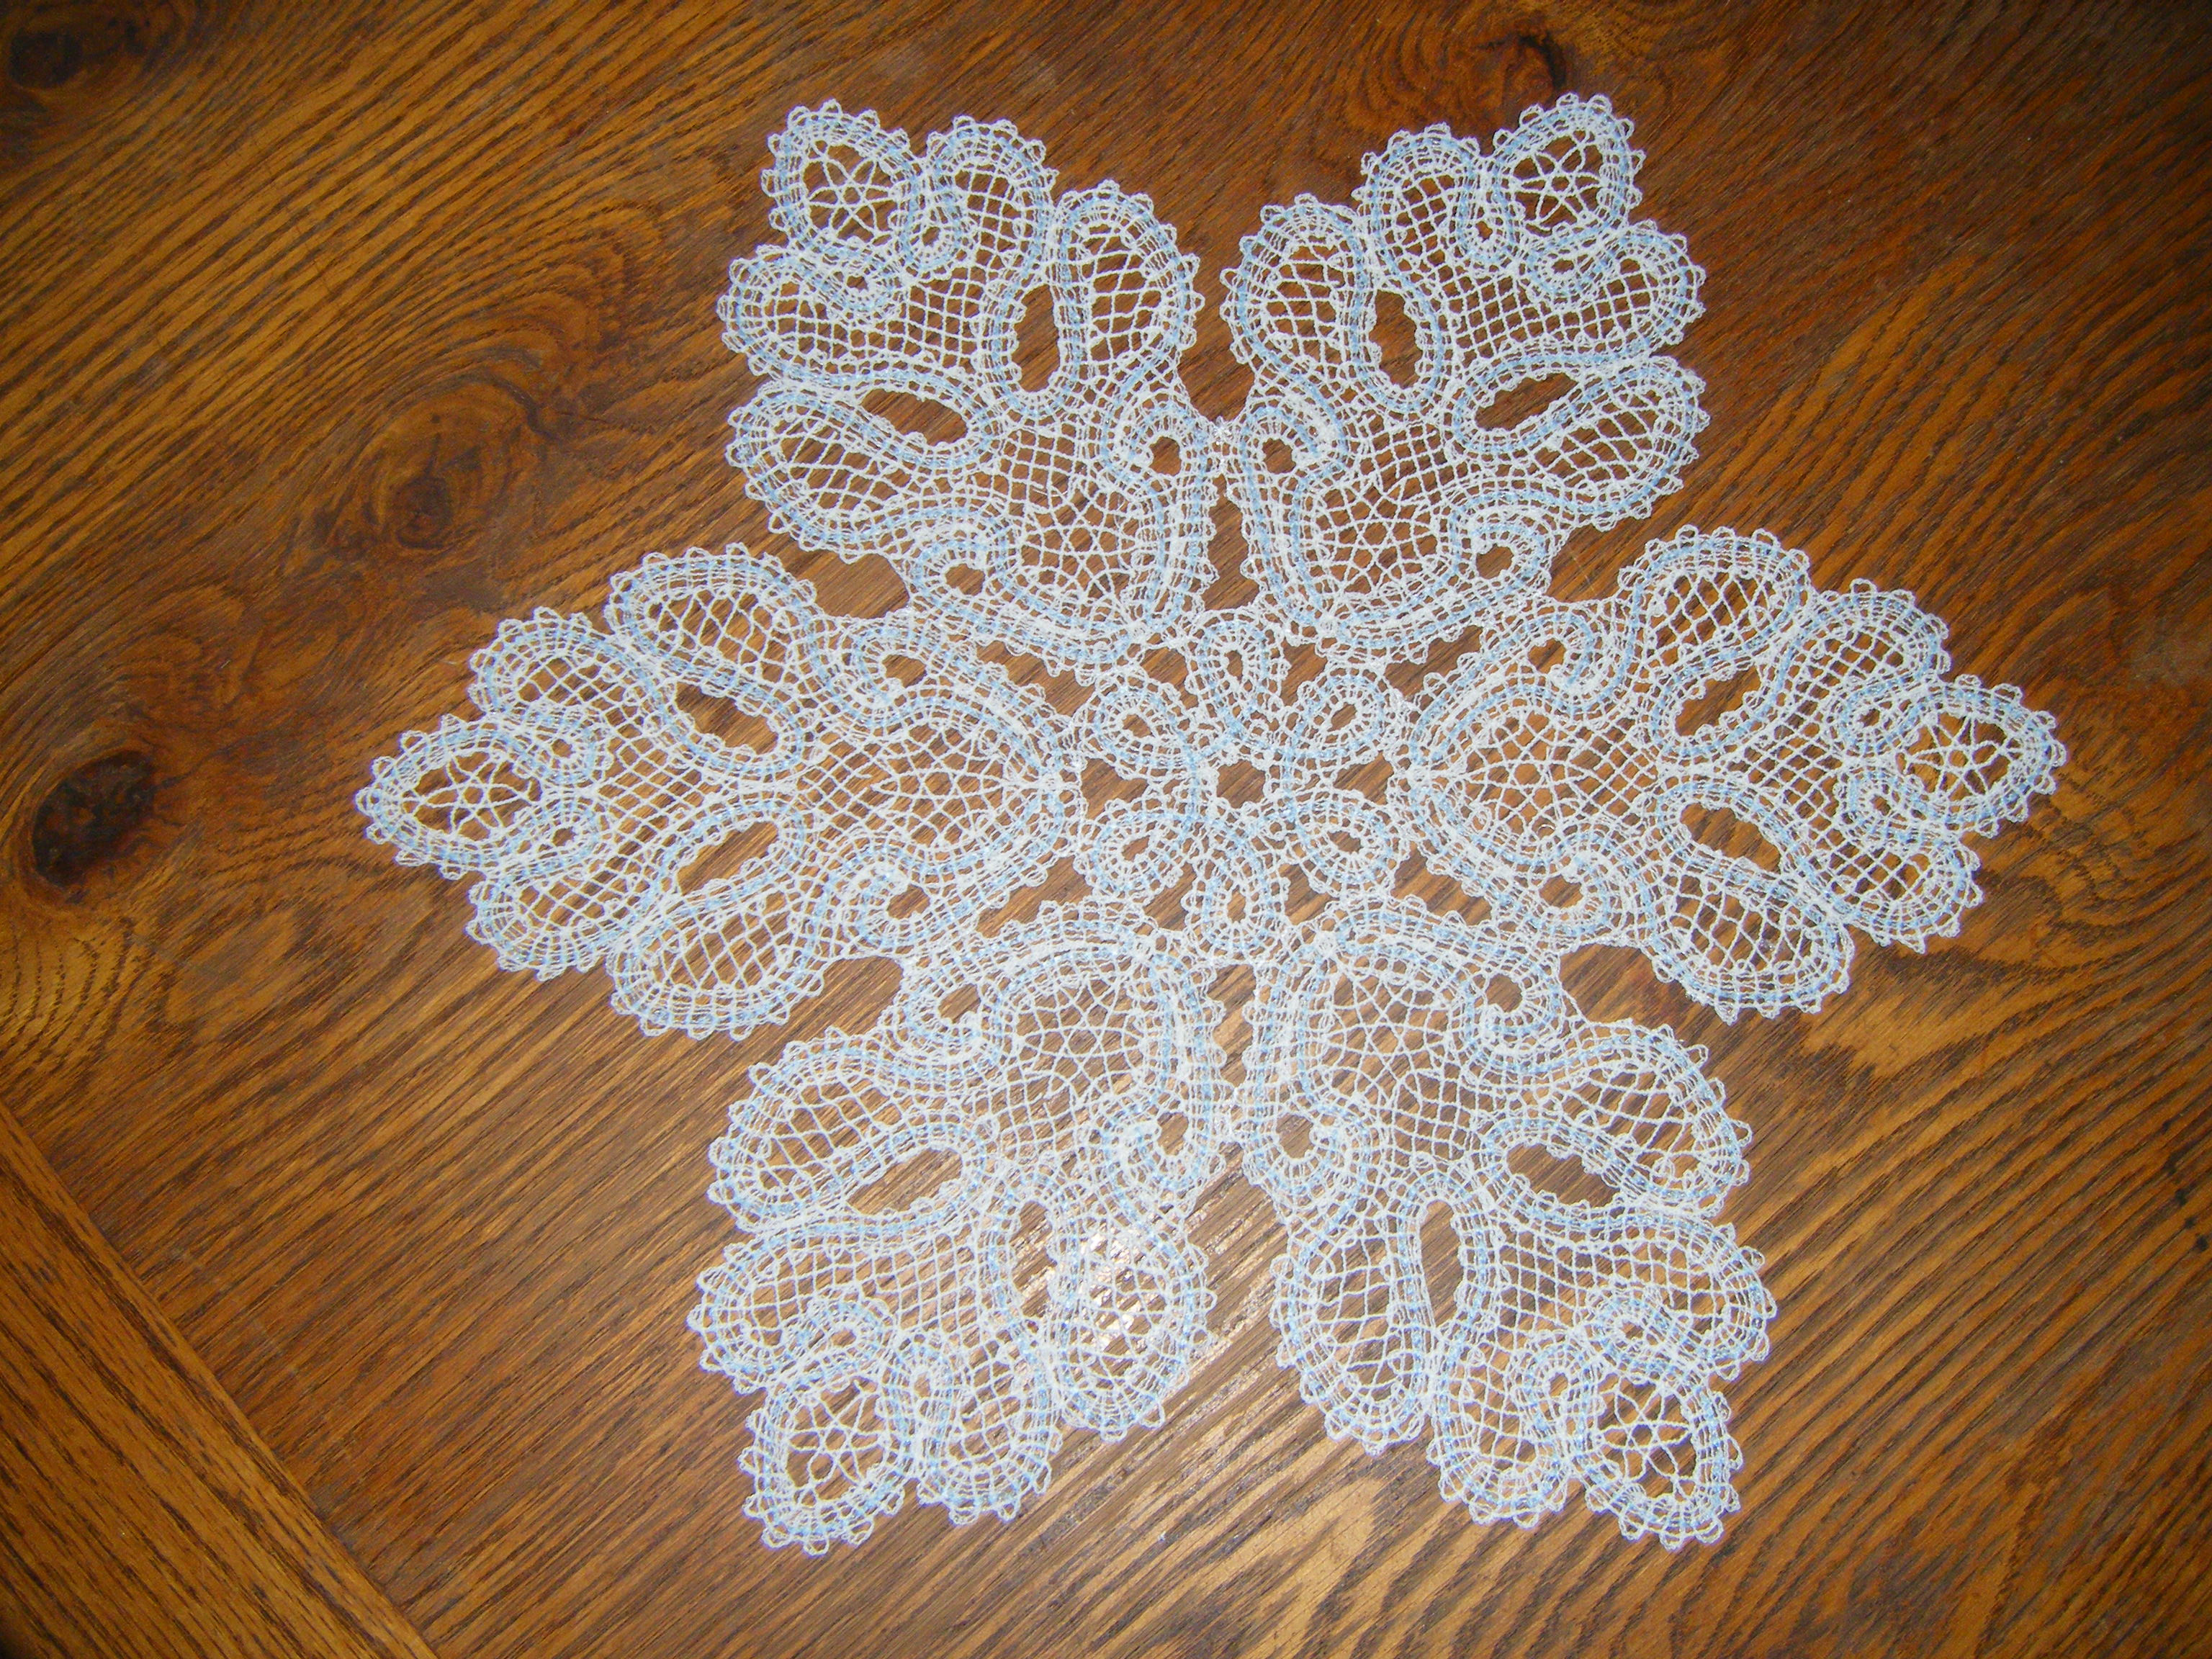 Easy Crochet Doily Patterns Awesome How to Crochet Snowflake Patterns 33 Amazing Diy Of Adorable 43 Pictures Easy Crochet Doily Patterns